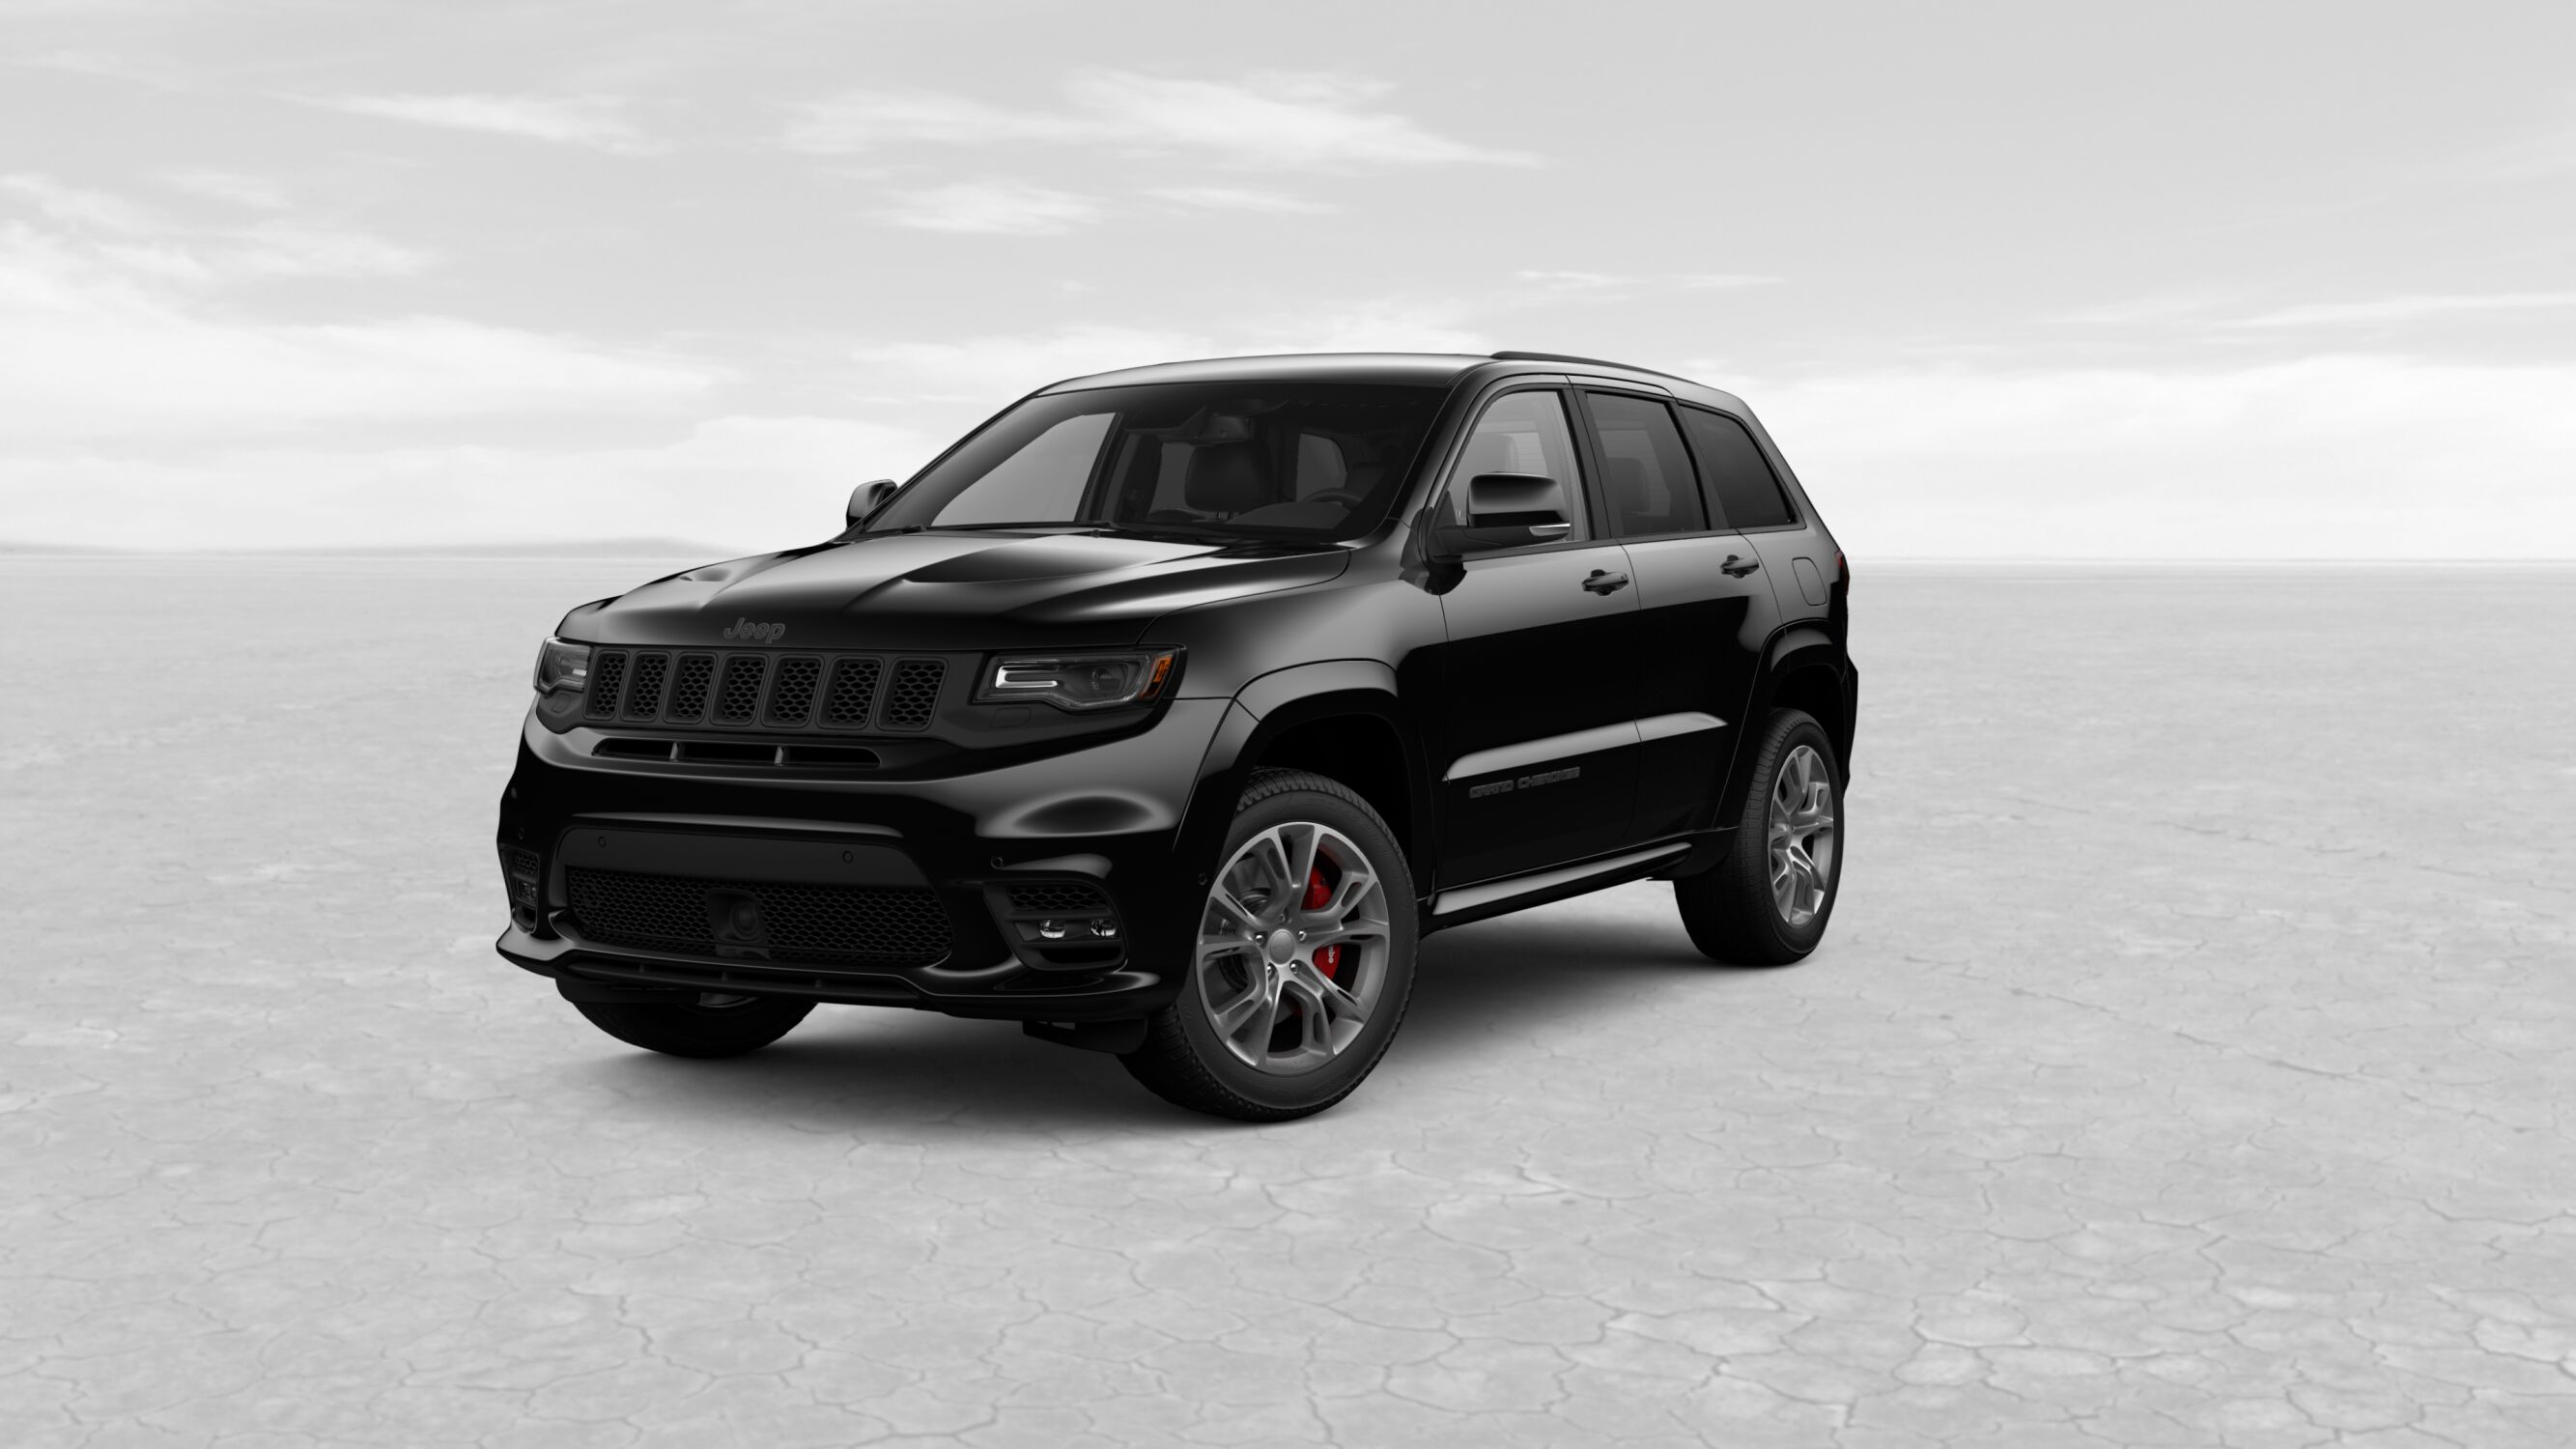 2018 jeep grand cherokee srt mark s casa chrysler jeep. Black Bedroom Furniture Sets. Home Design Ideas